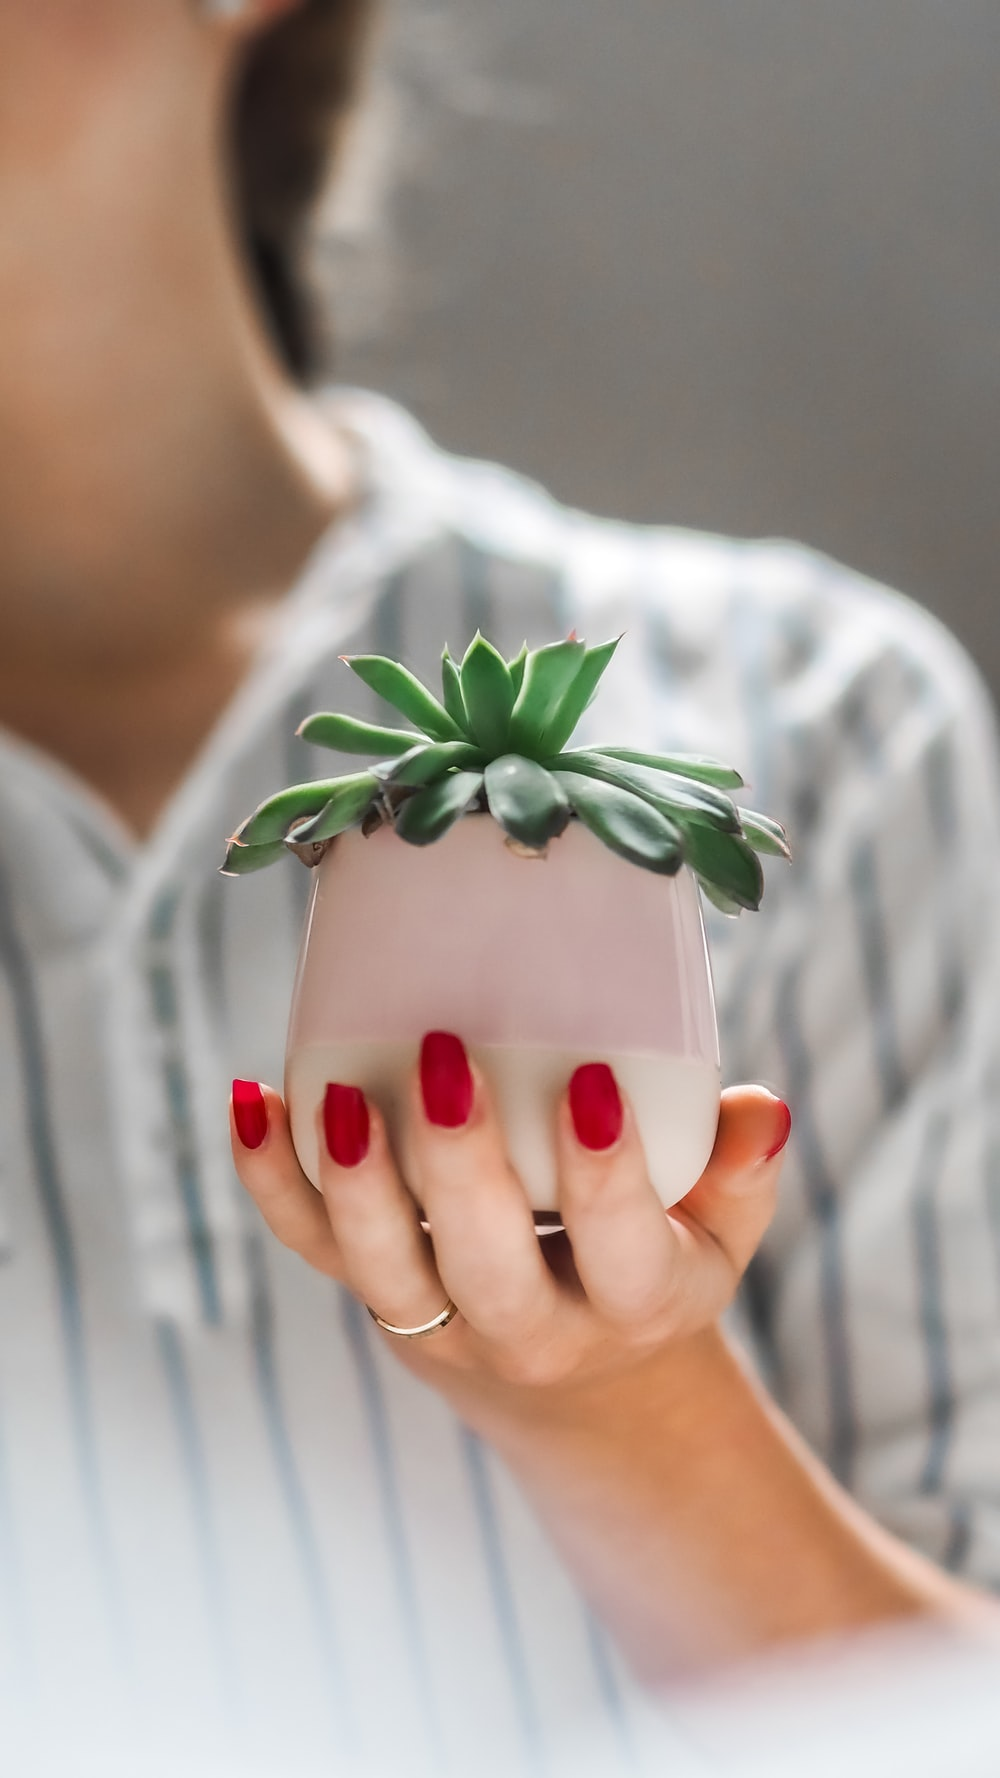 person holding white ceramic mug with green plant